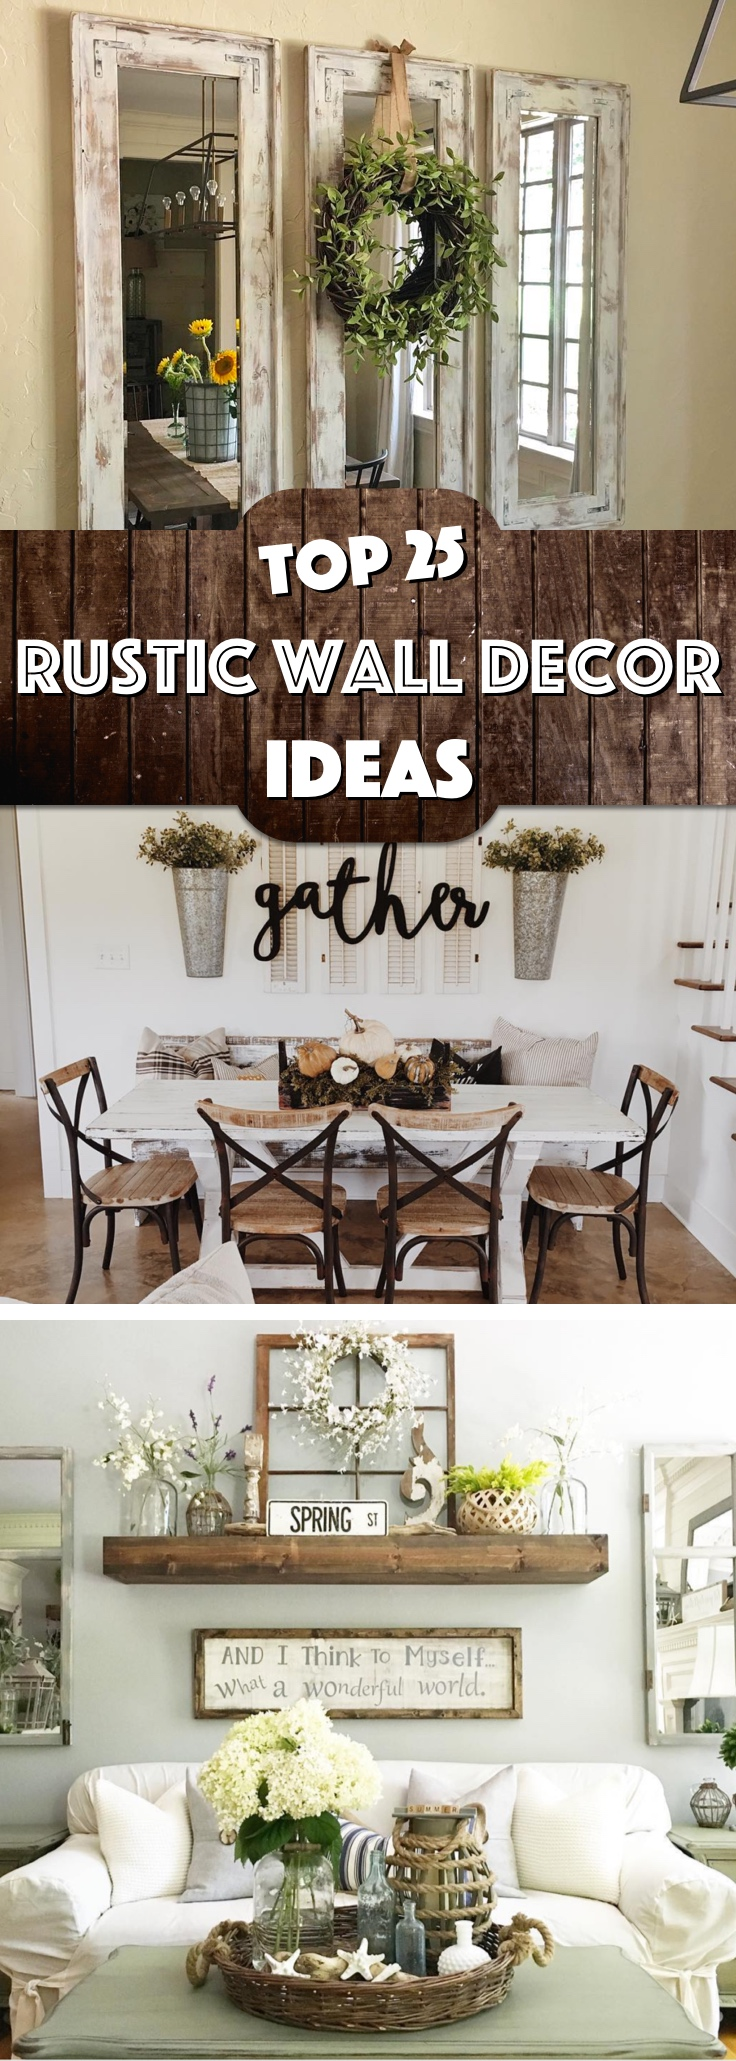 Rustic Wall Decor Captivating 25 Musttry Rustic Wall Decor Ideas Featuring The Most Amazing Decorating Inspiration